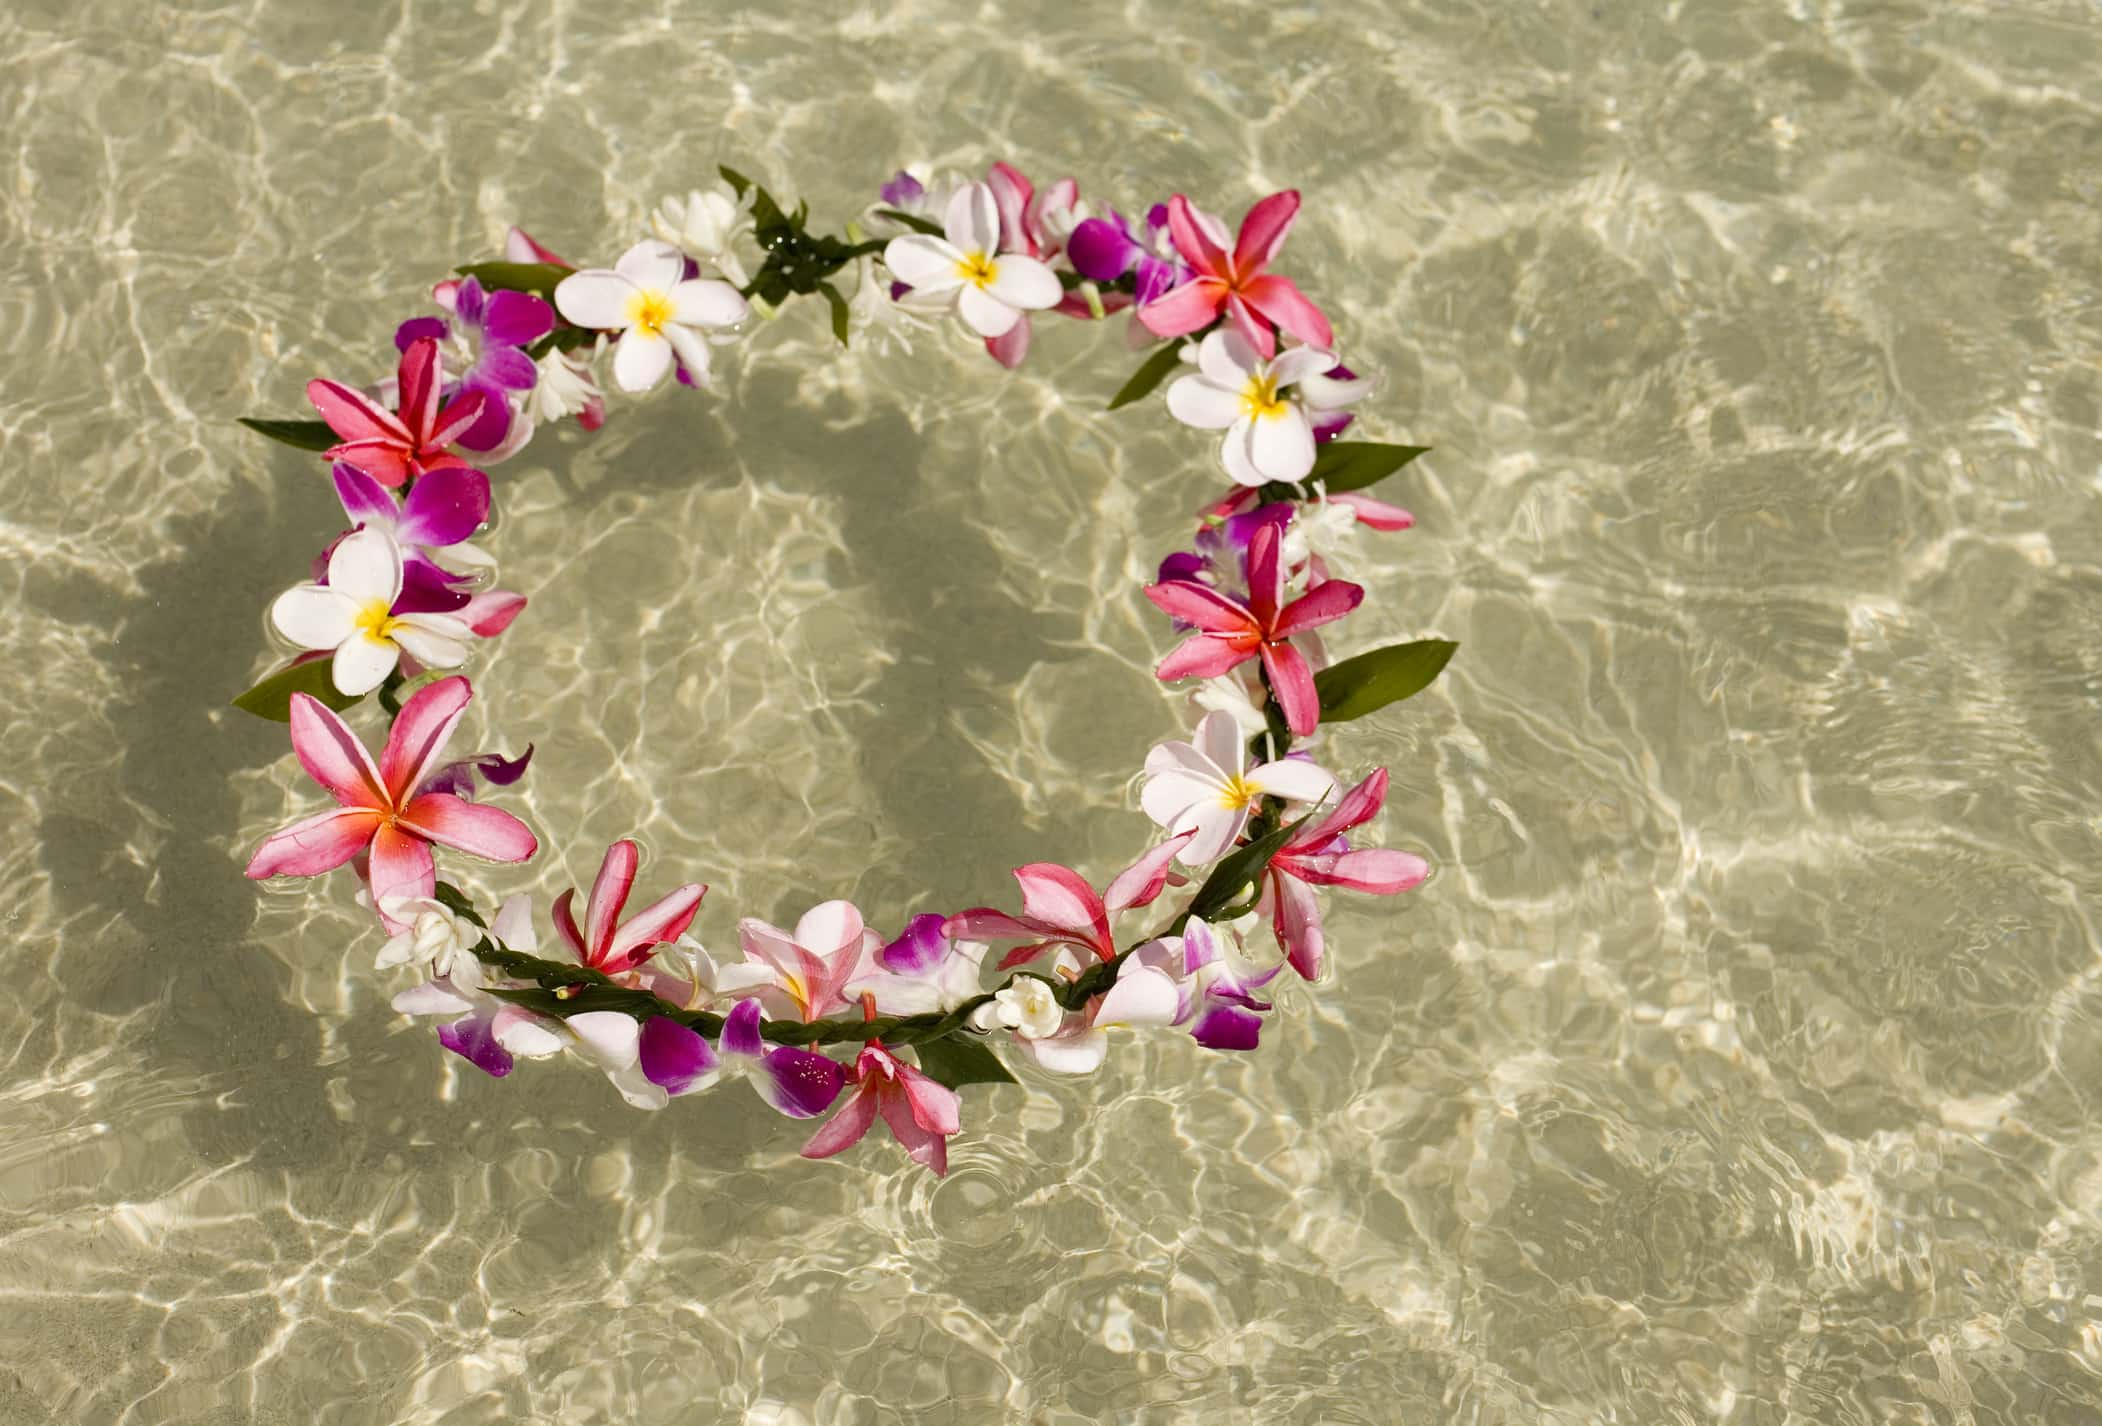 hawaiian lei floating in the ocean